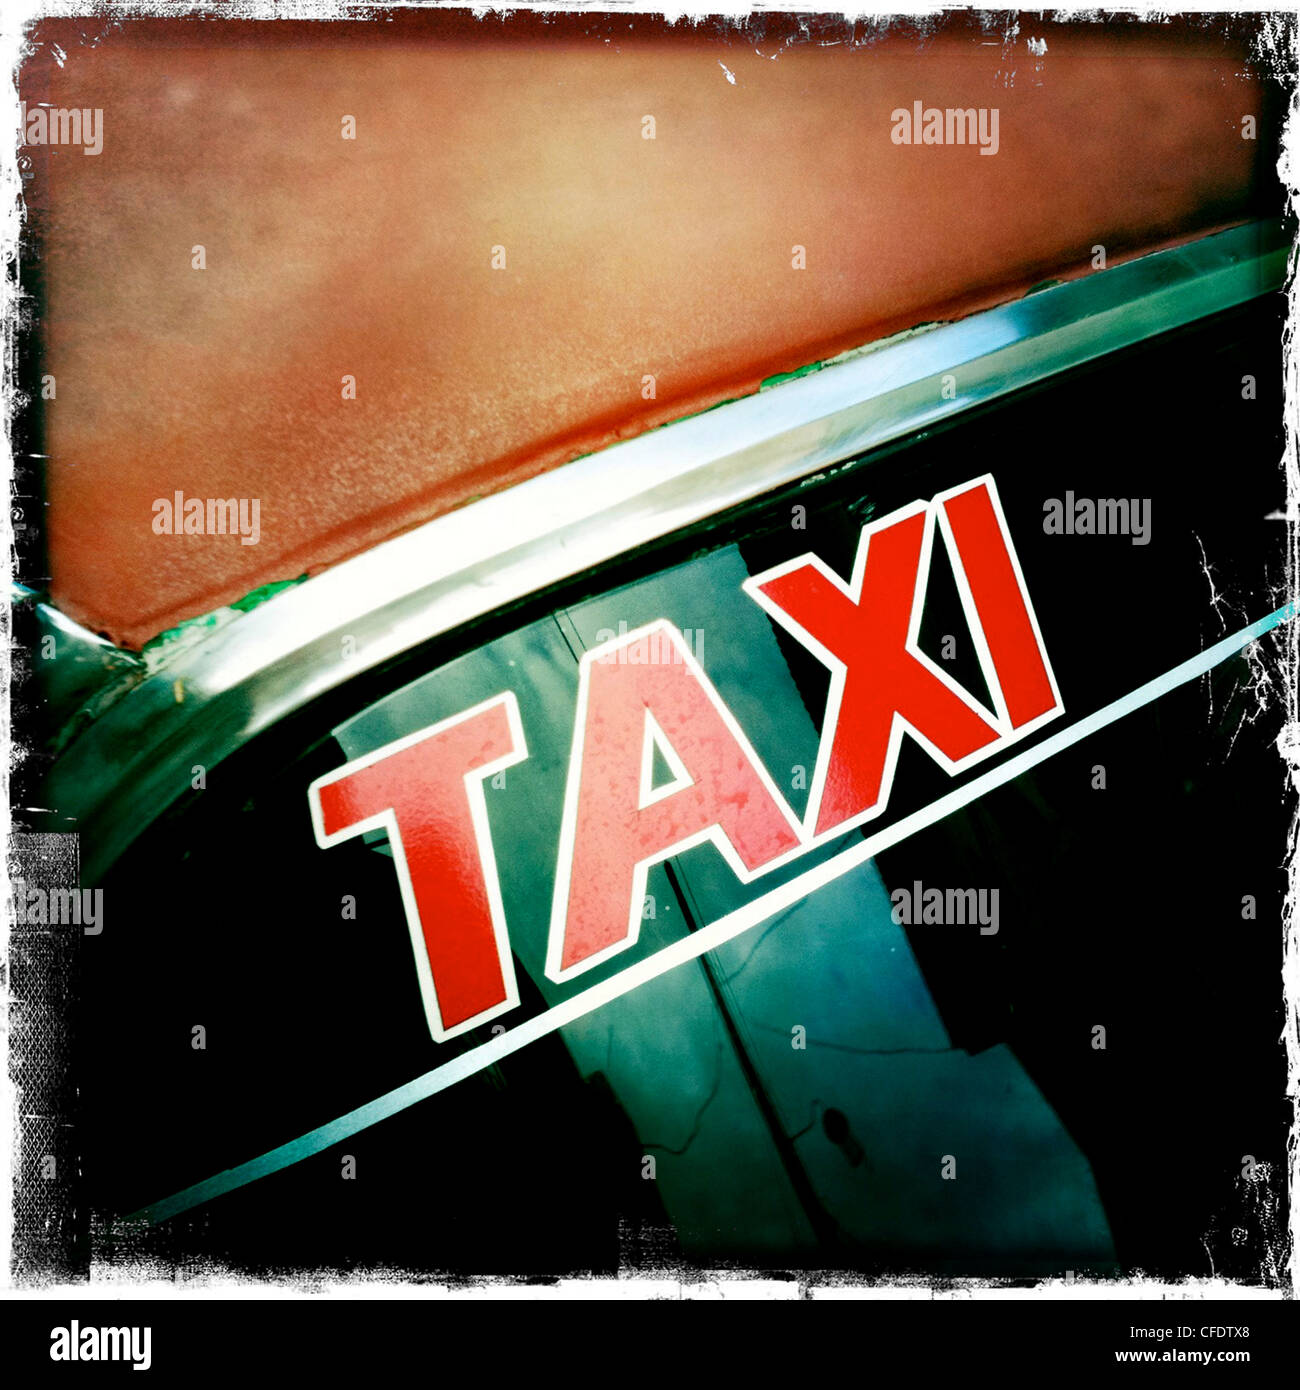 Taxi sign on windscreen of classic American car, Trinidad, Cuba, West Indies, Caribbean, Central America - Stock Image